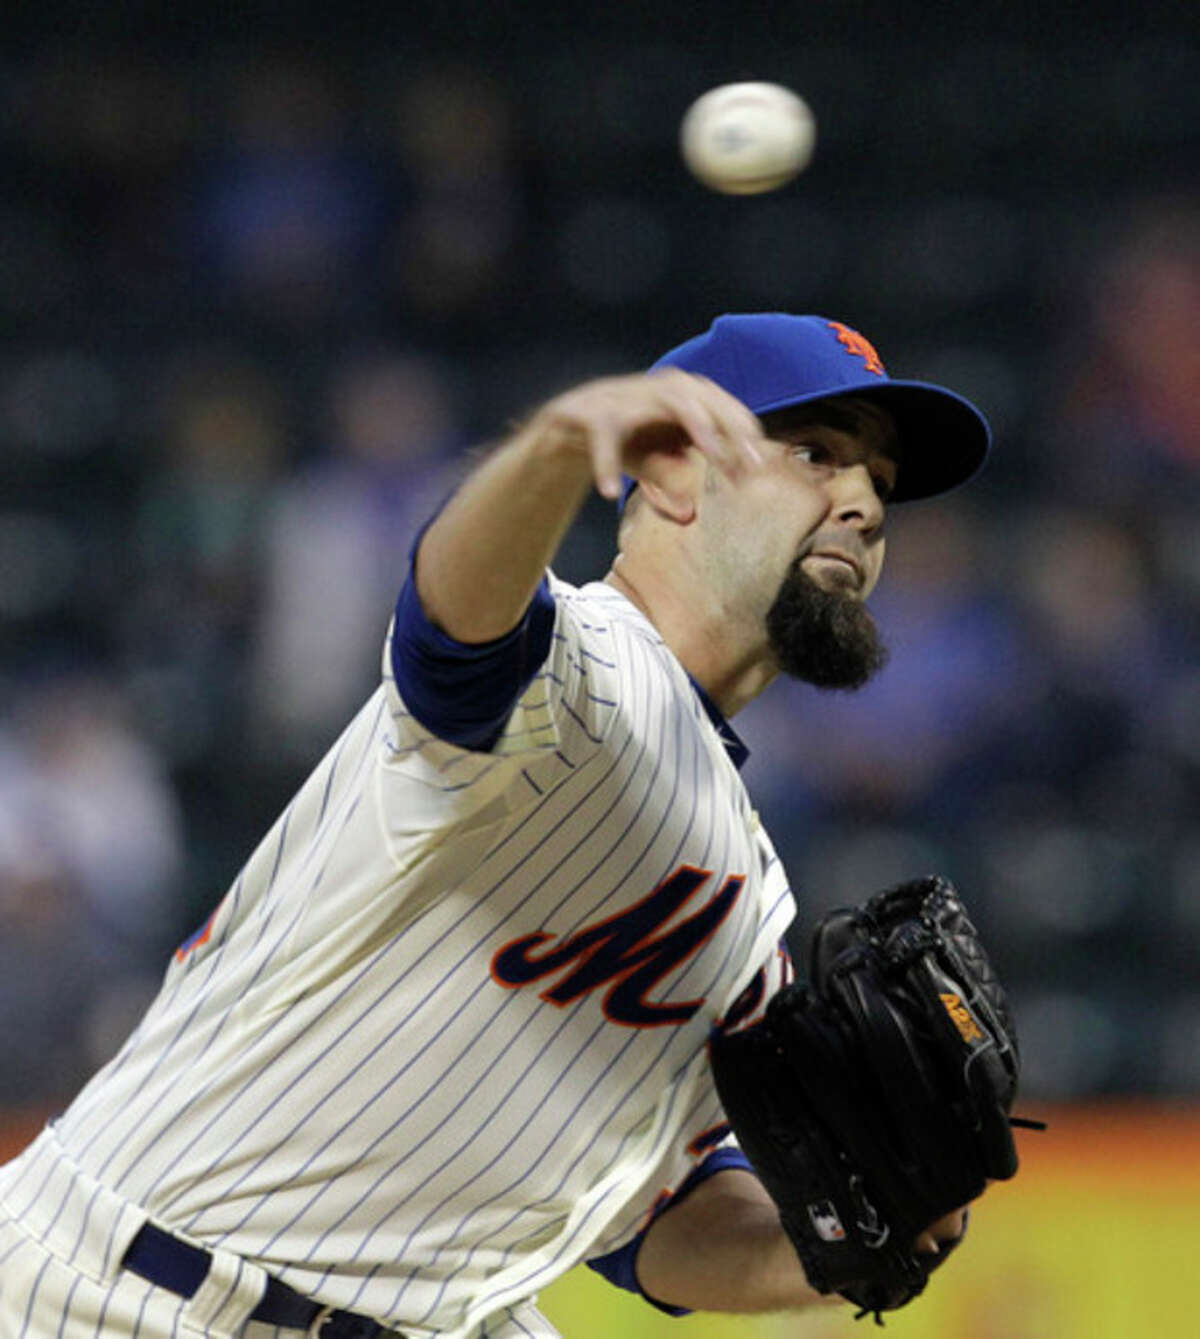 New York Mets starting pitcher Dillon Gee delivers to the Milwaukee Brewers during the first inning of a baseball game at Citi Field in New York, Tuesday, May 15, 2012. (AP Photo/Kathy Willens)